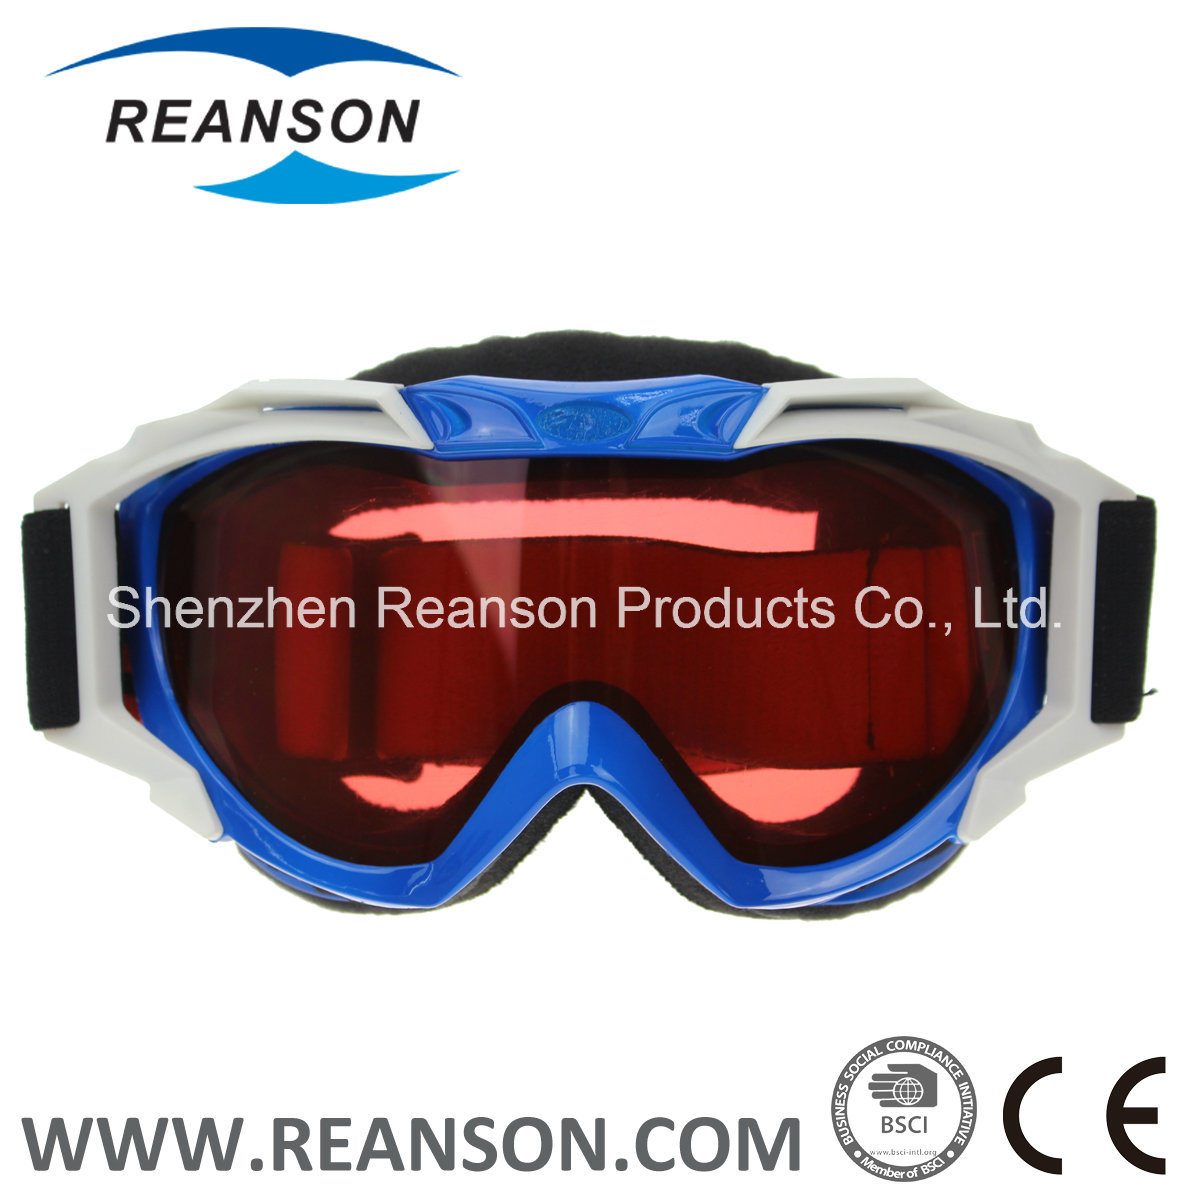 Reanson High Quality Wide View Double Lenses Skiing Goggles